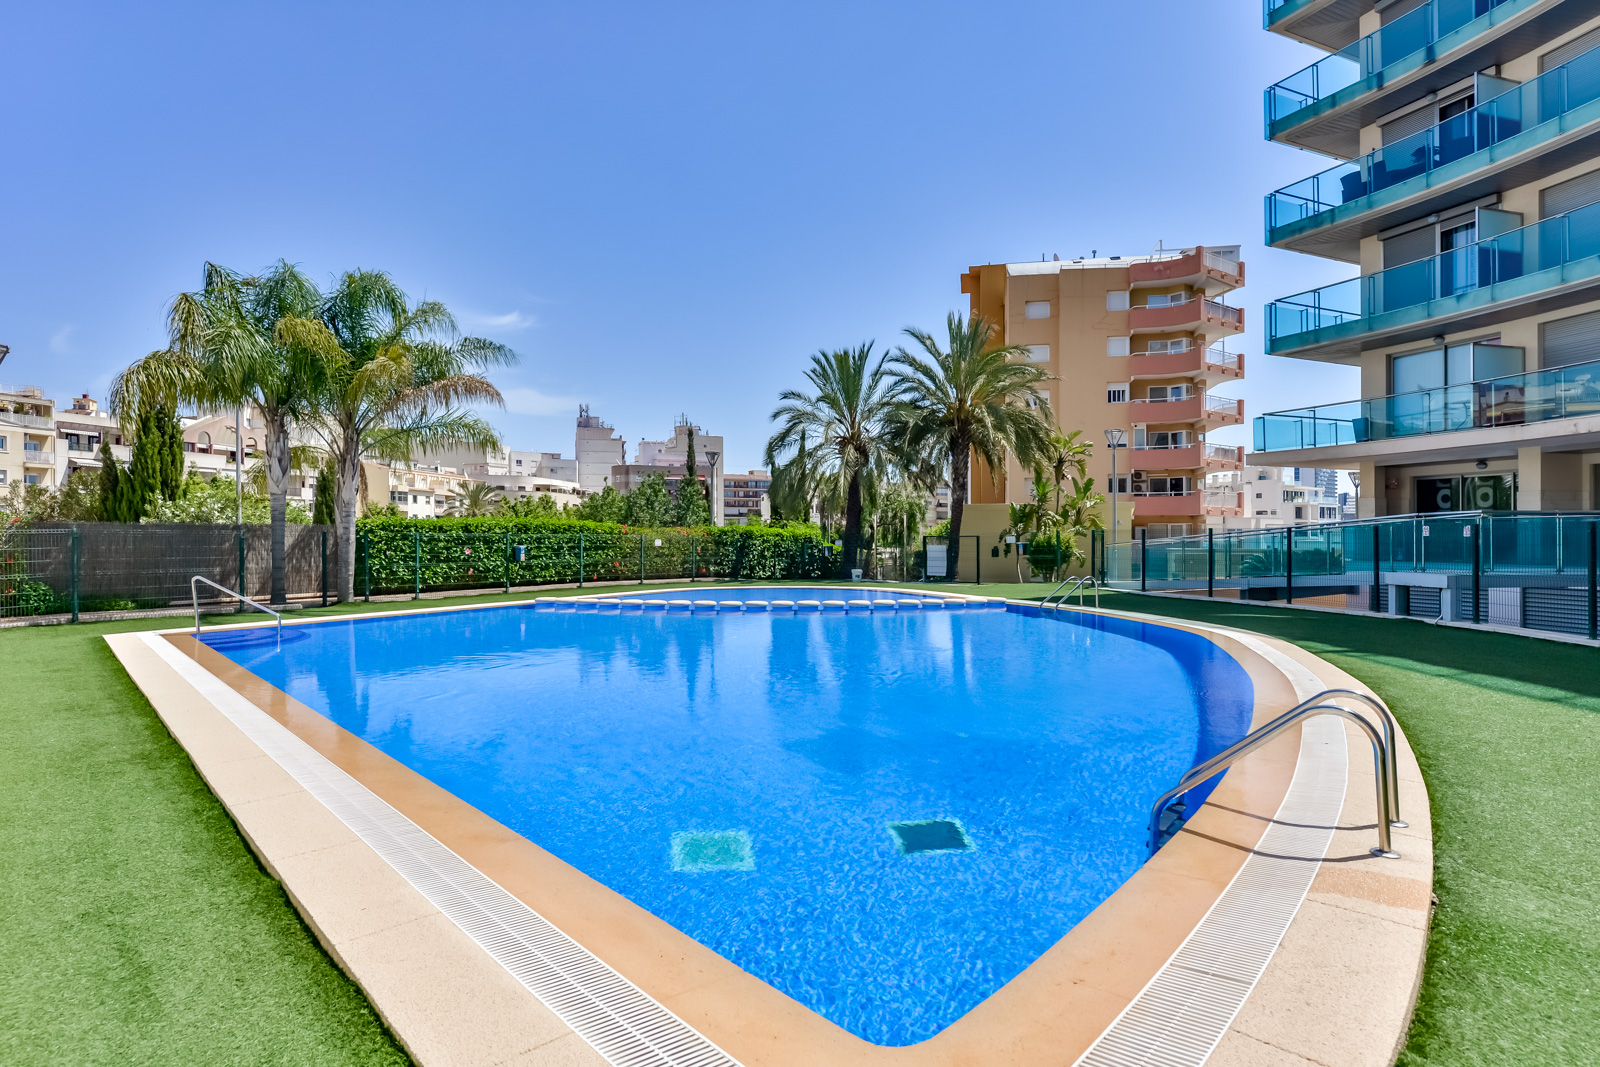 Apartamento Borumbot 26, Comfortable apartment in Calpe, on the Costa Blanca, Spain  with communal pool for 6 persons.....